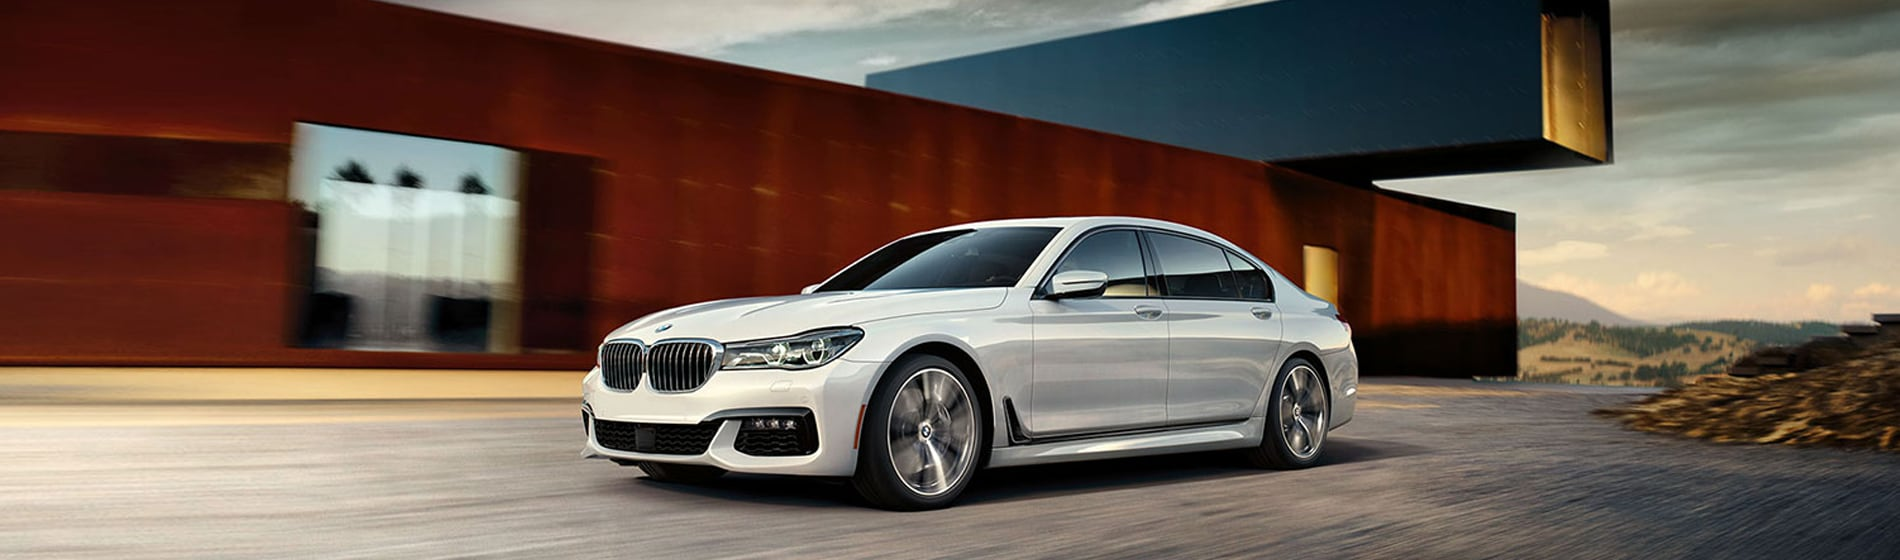 Executive Demos BMW Special Offer